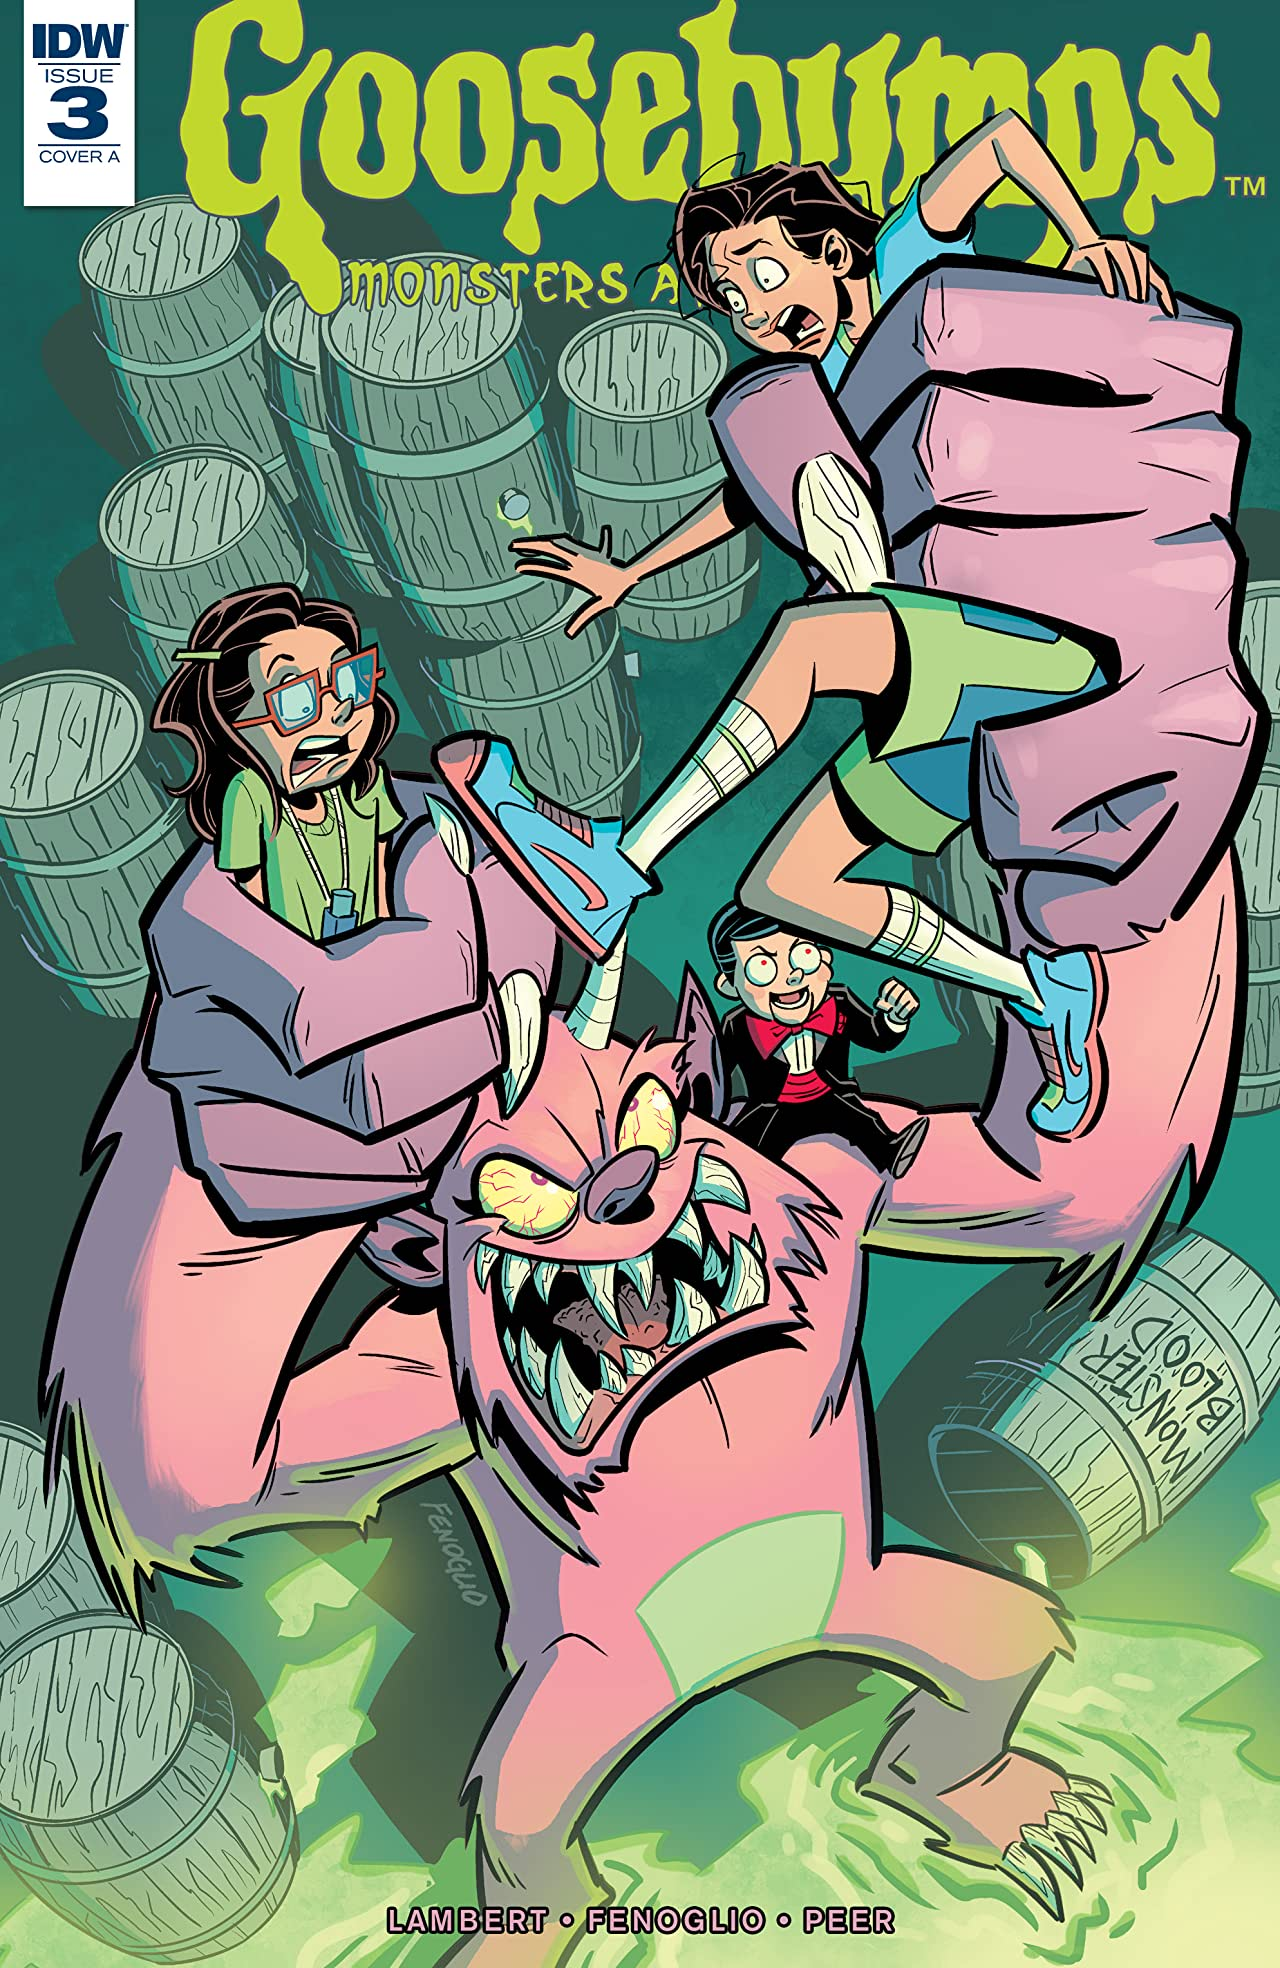 Goosebumps: Monsters at Midnight #3